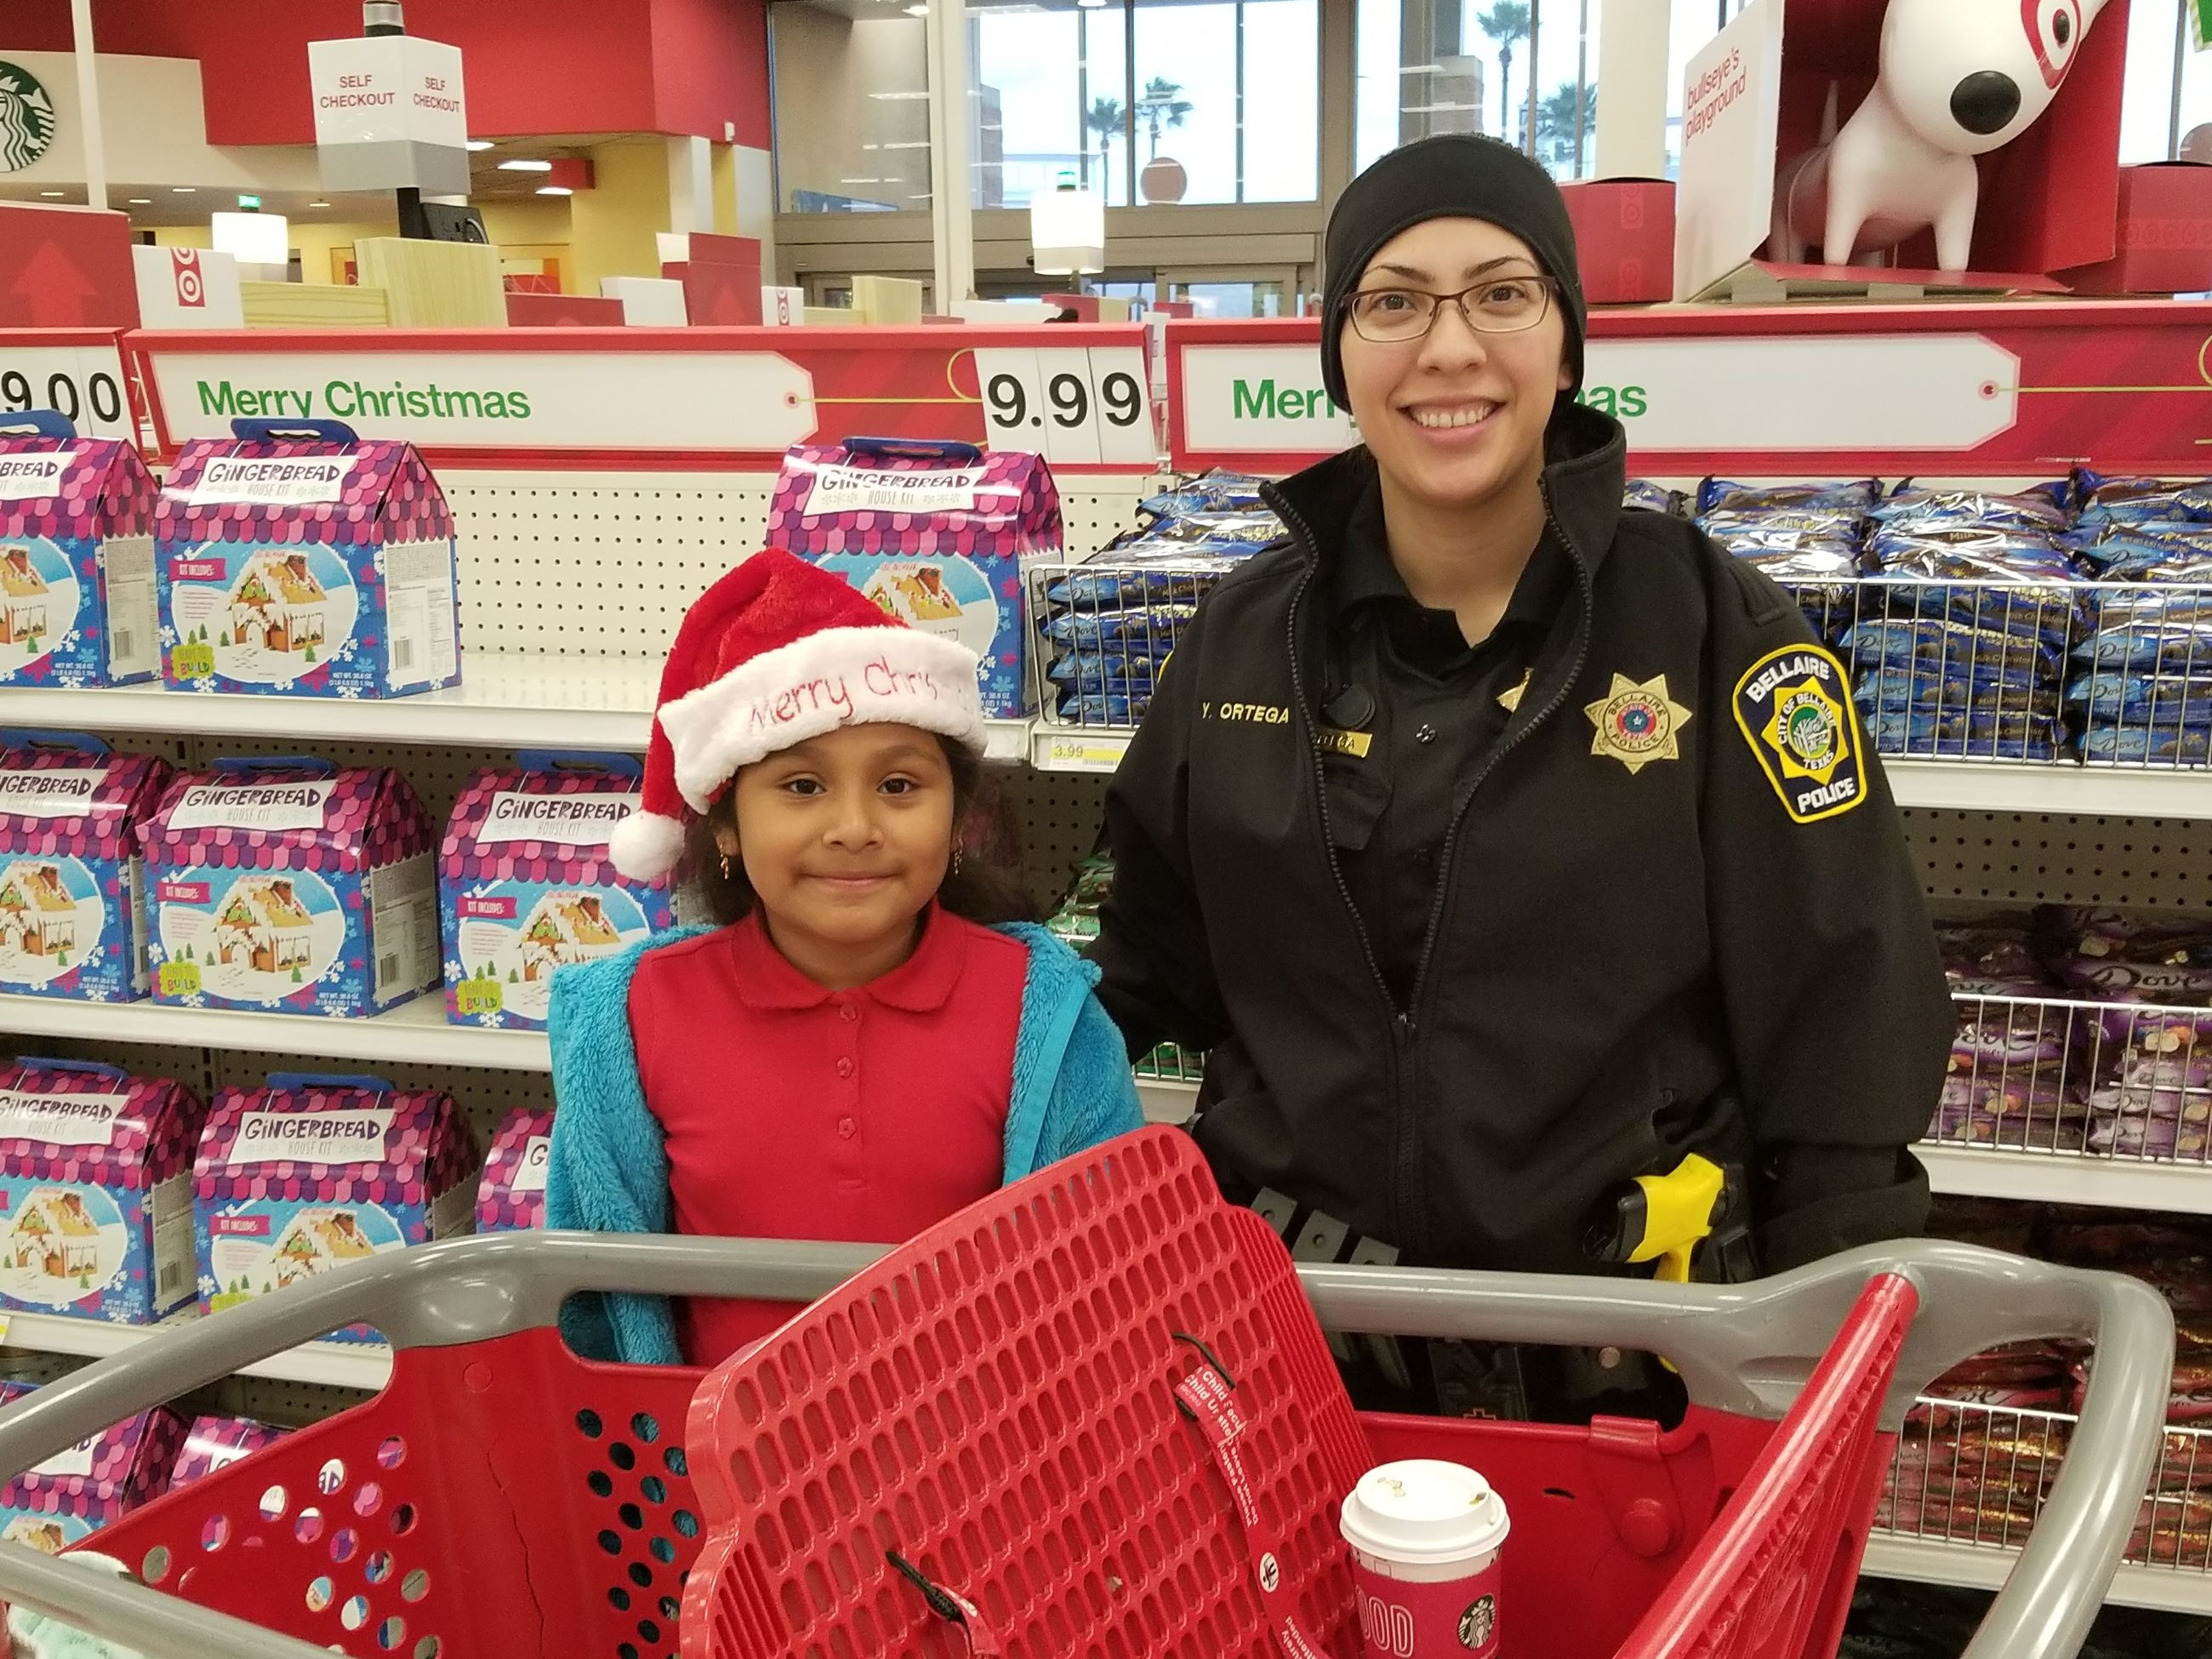 Officer and little girl shop at Target